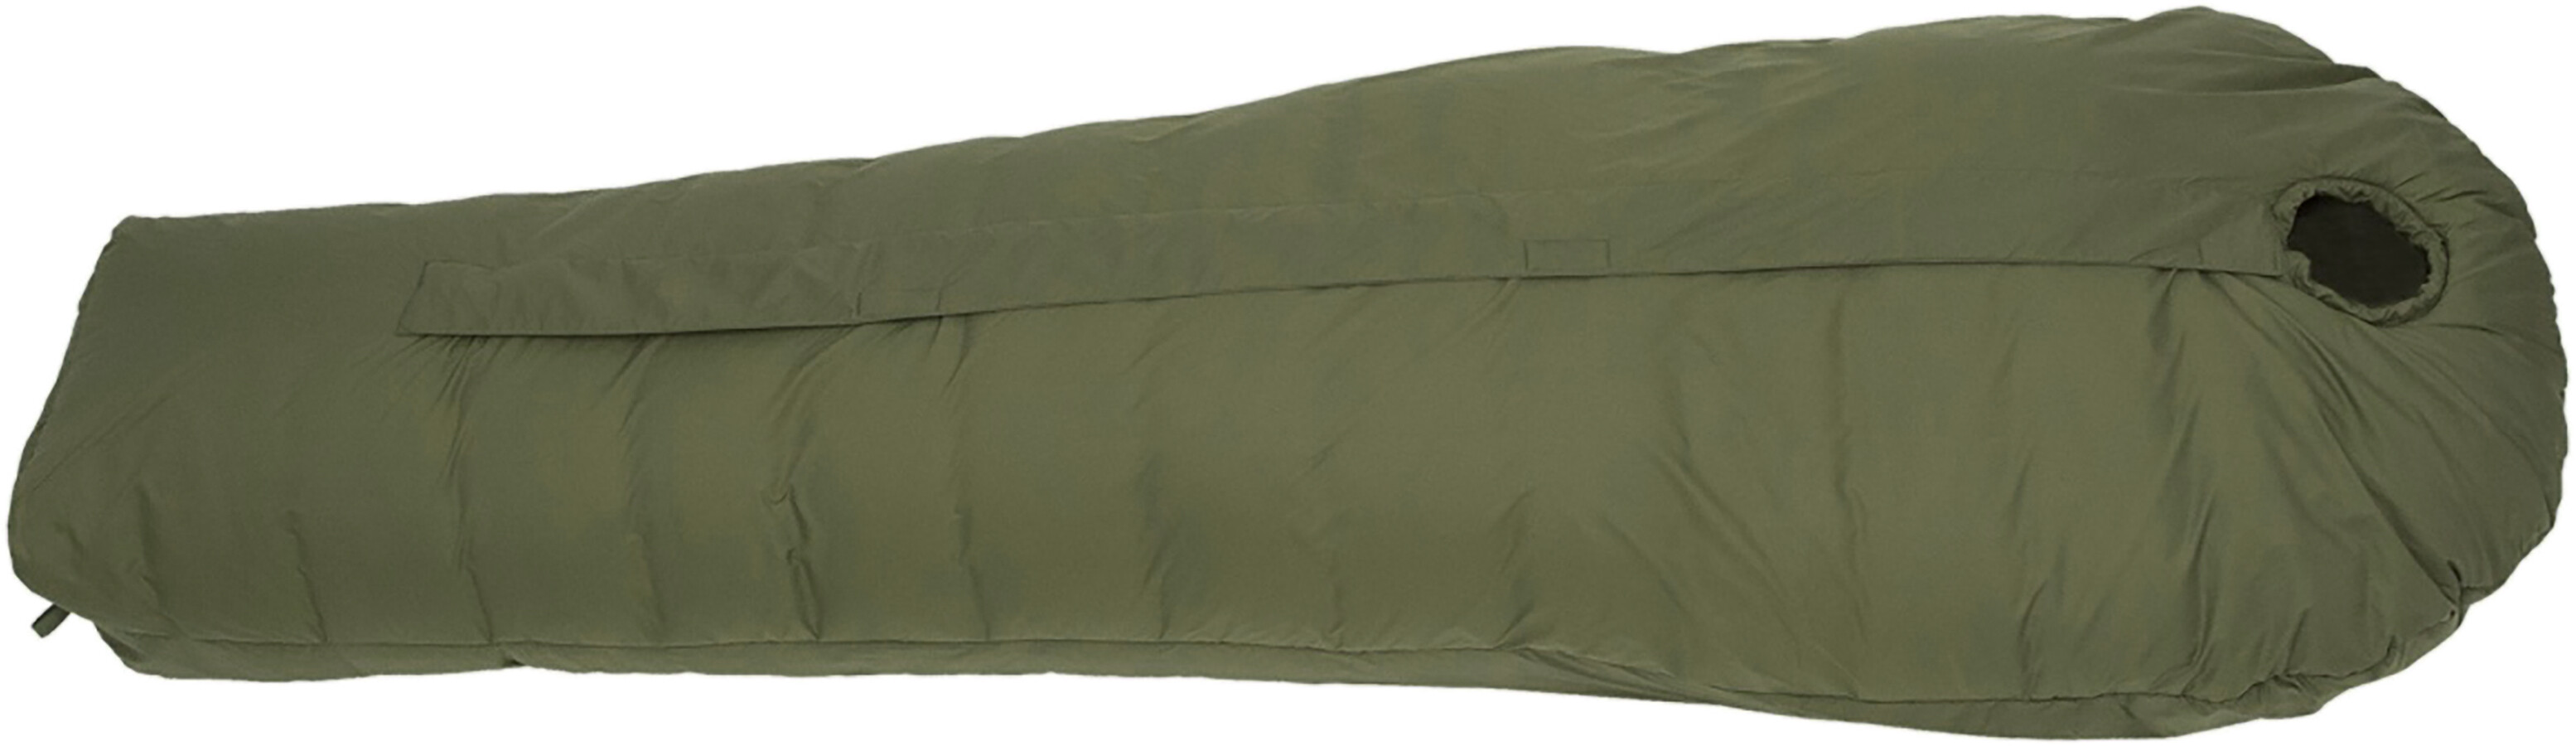 b2fb8541251 Carinthia Defense 4 Sleeping Bag M, olive | Campz.es